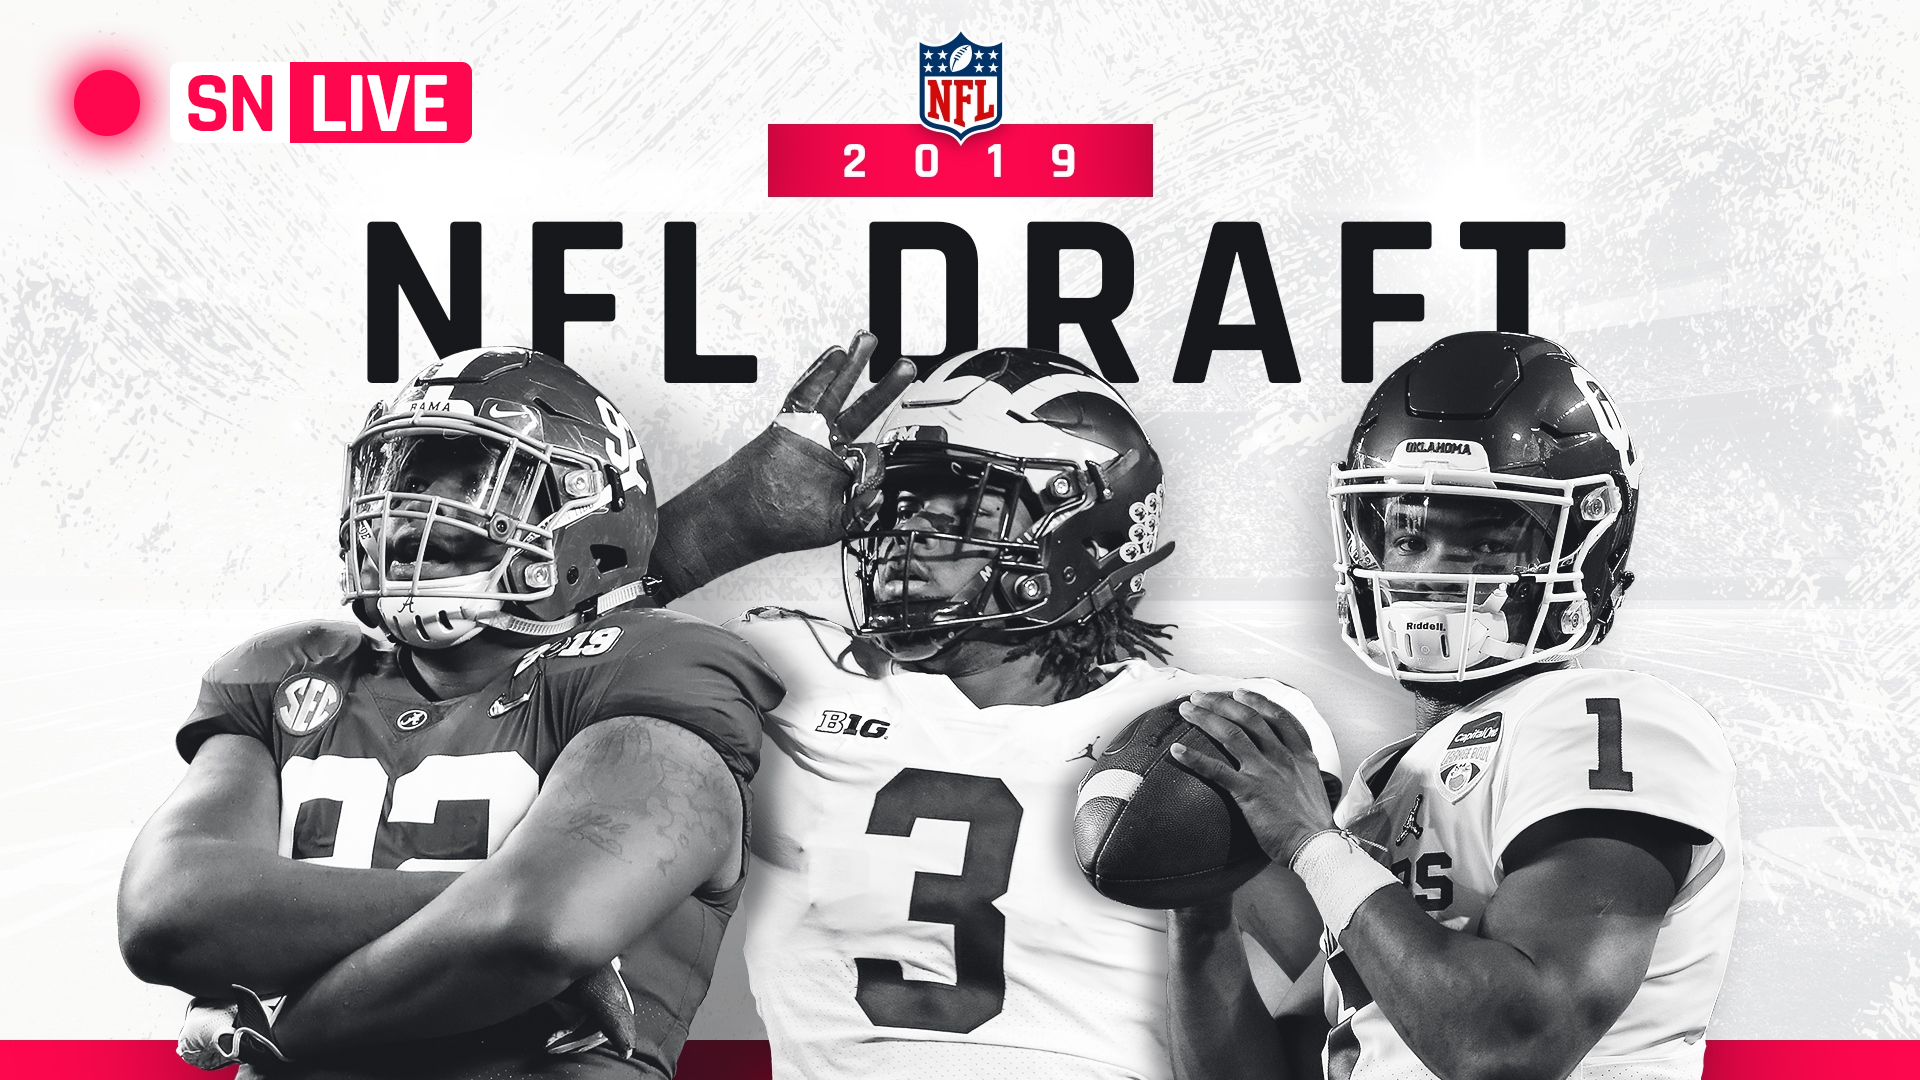 NFL Draft tracker 2019: Live results, pick analysis & grades for Rounds 2-3